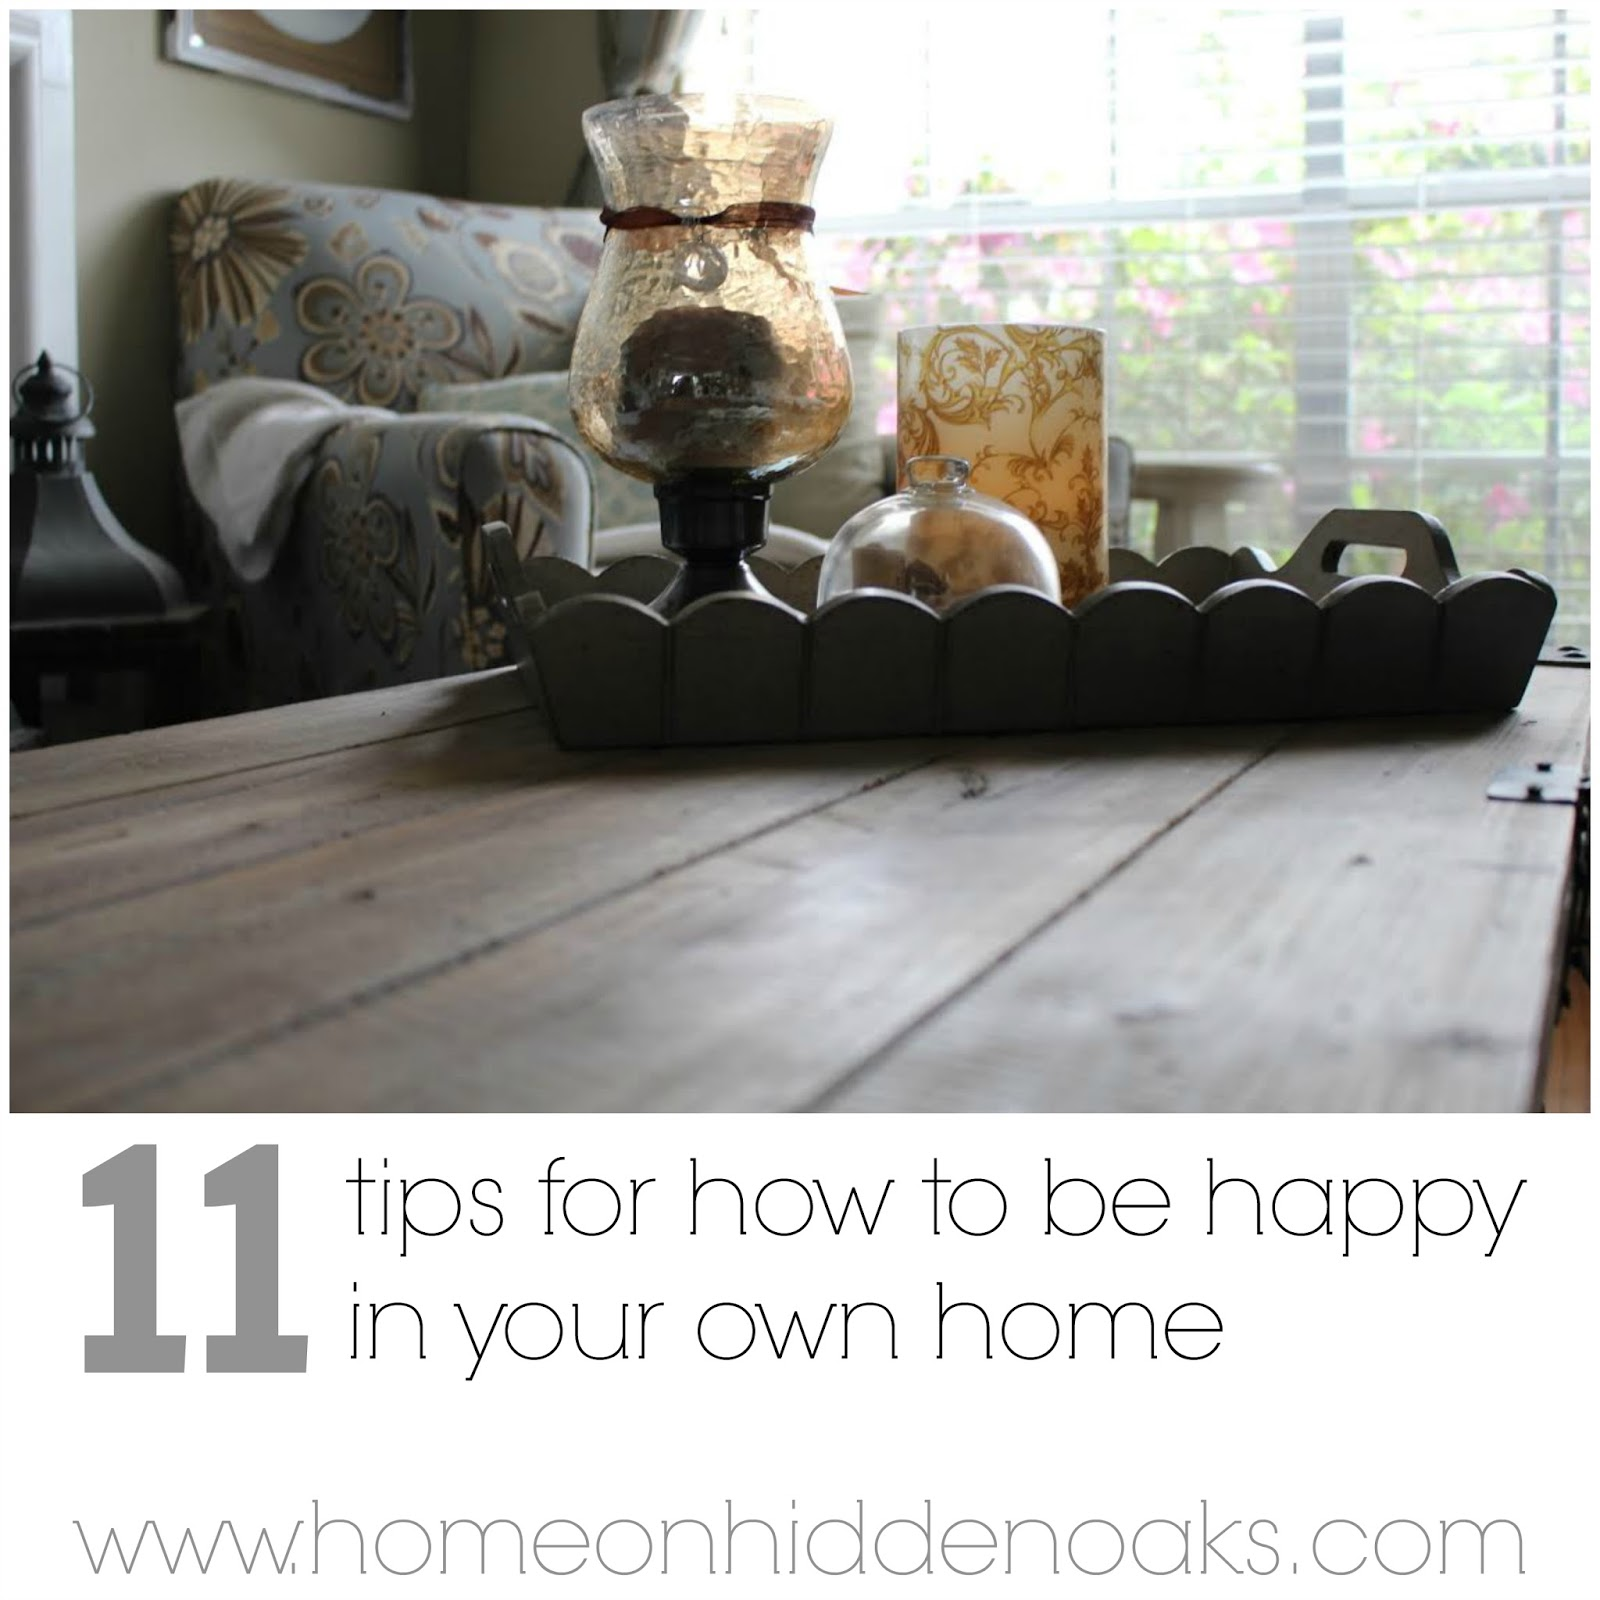 11 Tips For How To Be Happy In Your Own Home Home On Hidden Oaks